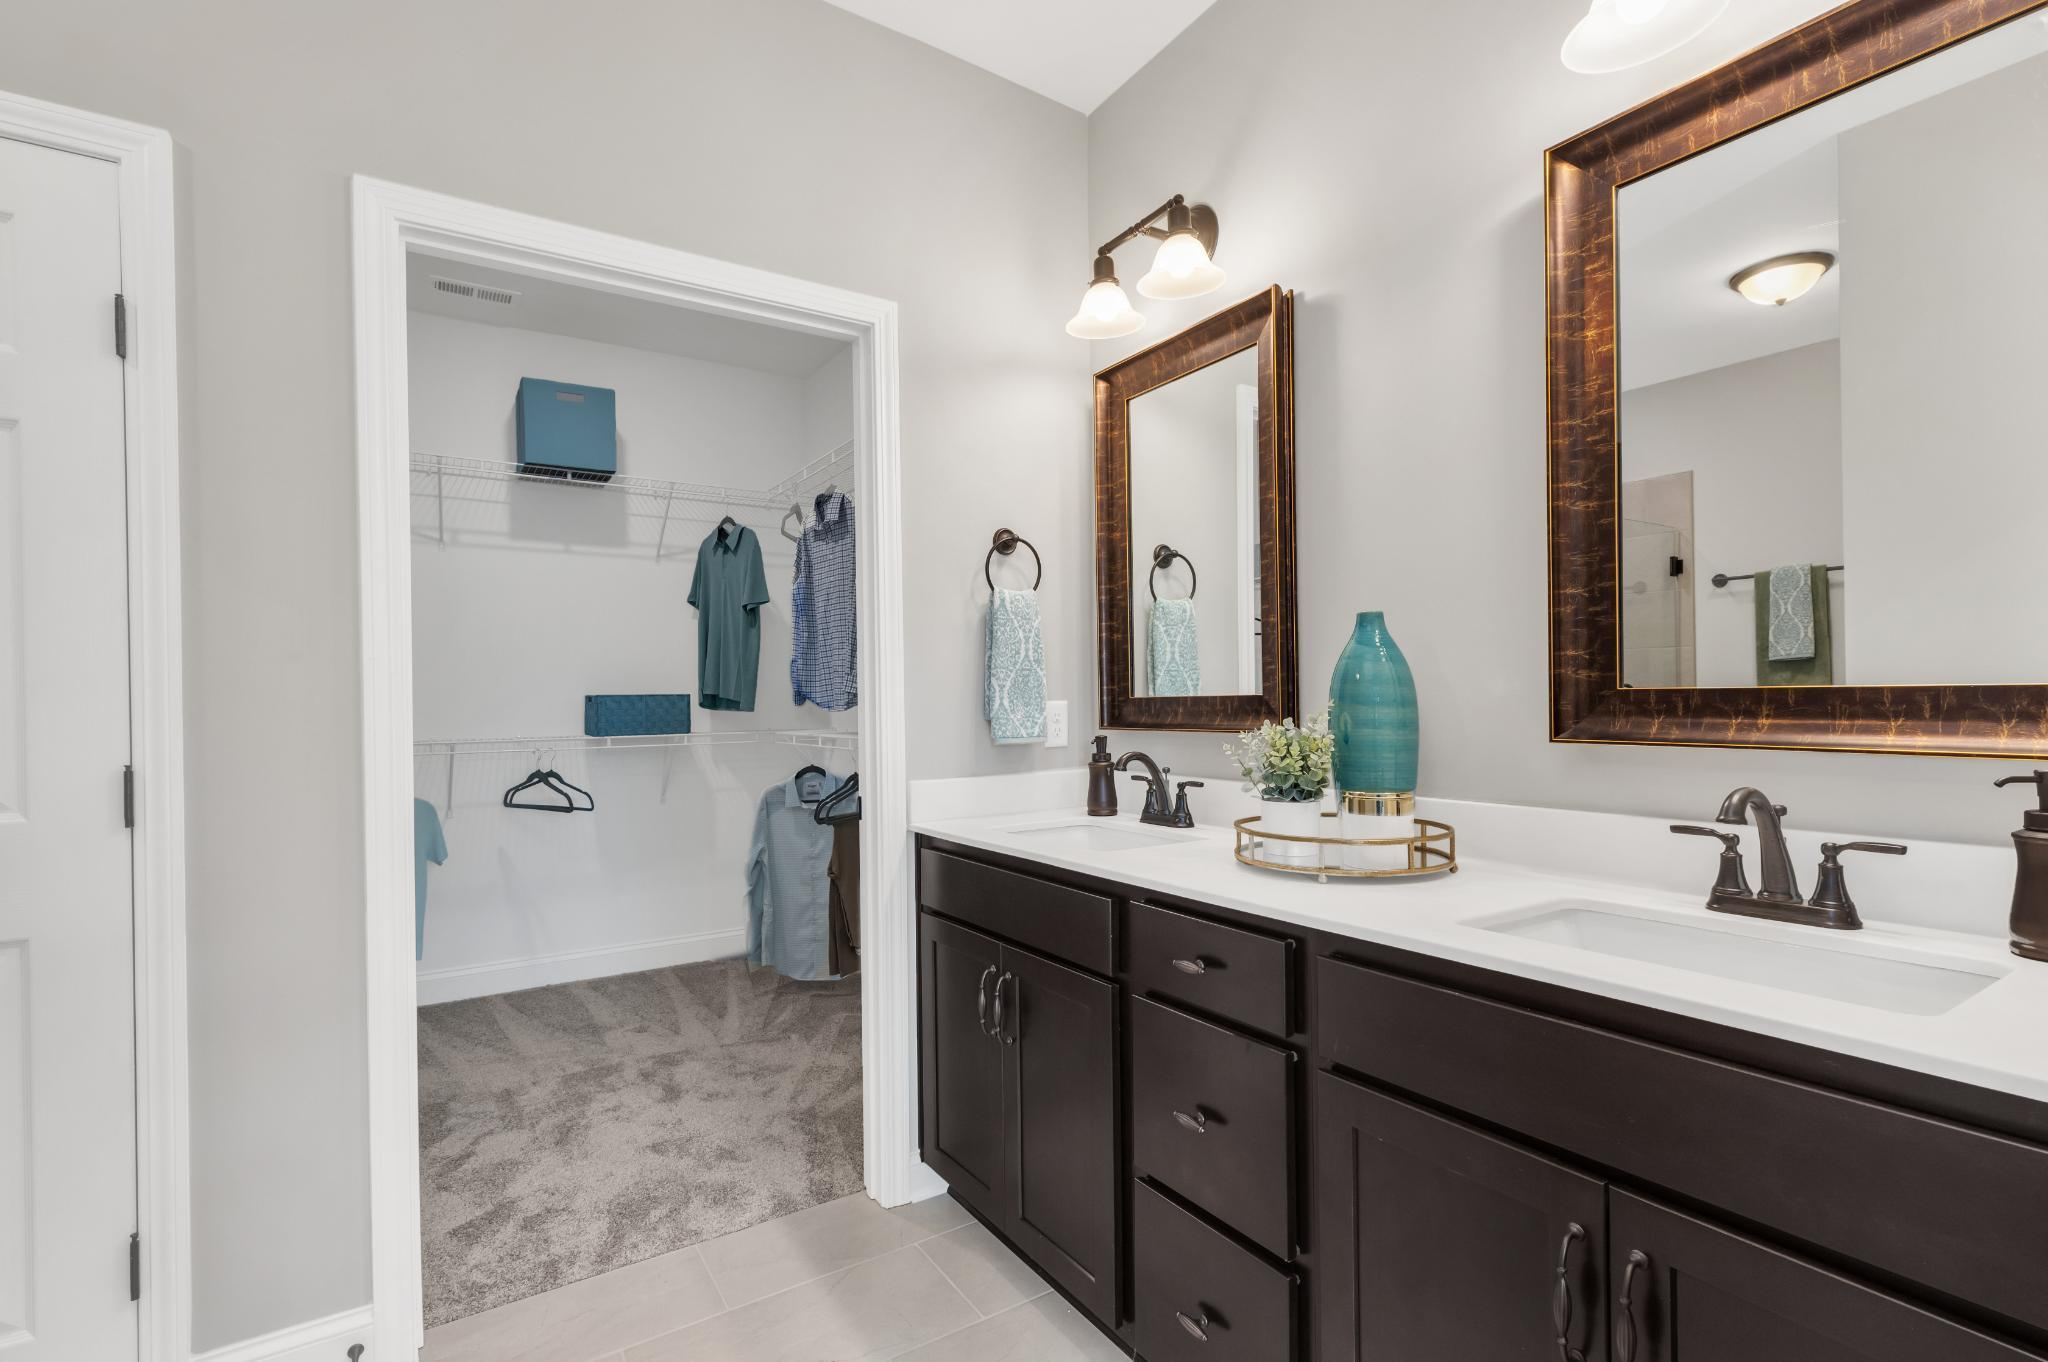 Bathroom featured in The Raleigh Courtyard Cottage By Goodall Homes in Chattanooga, GA